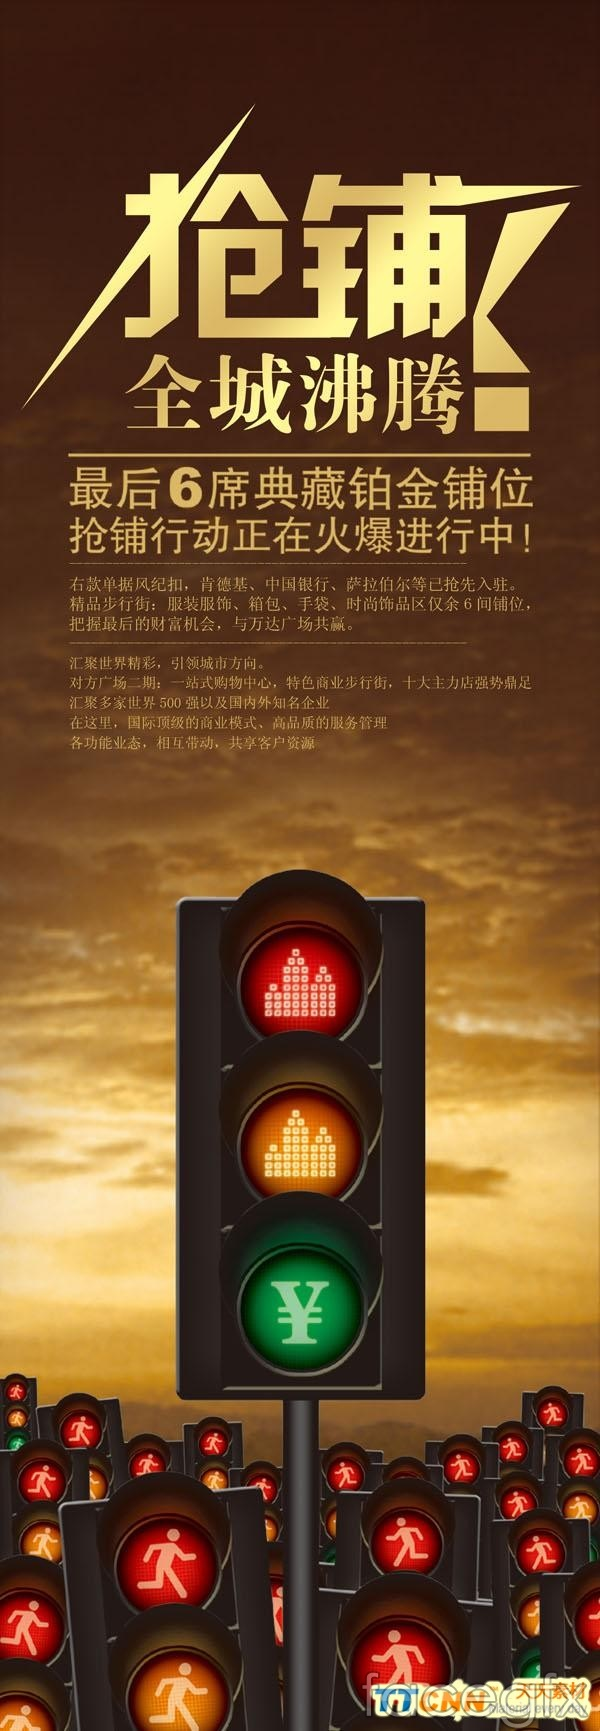 Traffic lights at creative real estate ads PSD